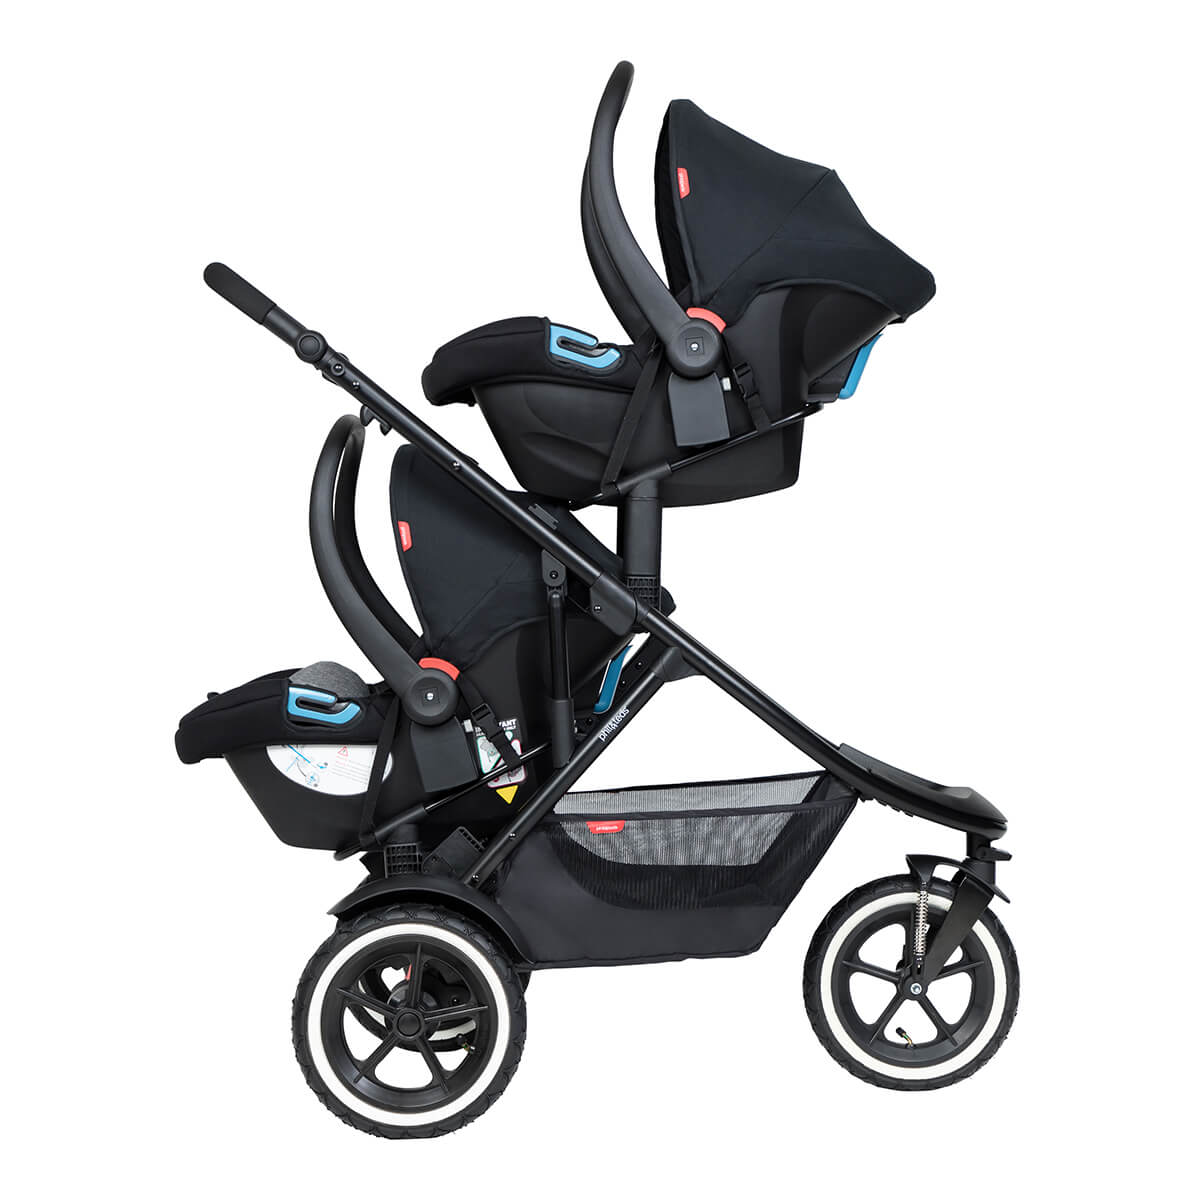 https://cdn.accentuate.io/4394876928105/19119322923113/philteds-sport-buggy-with-double-alpha-travel-system-v1626484878578.jpg?1200x1200